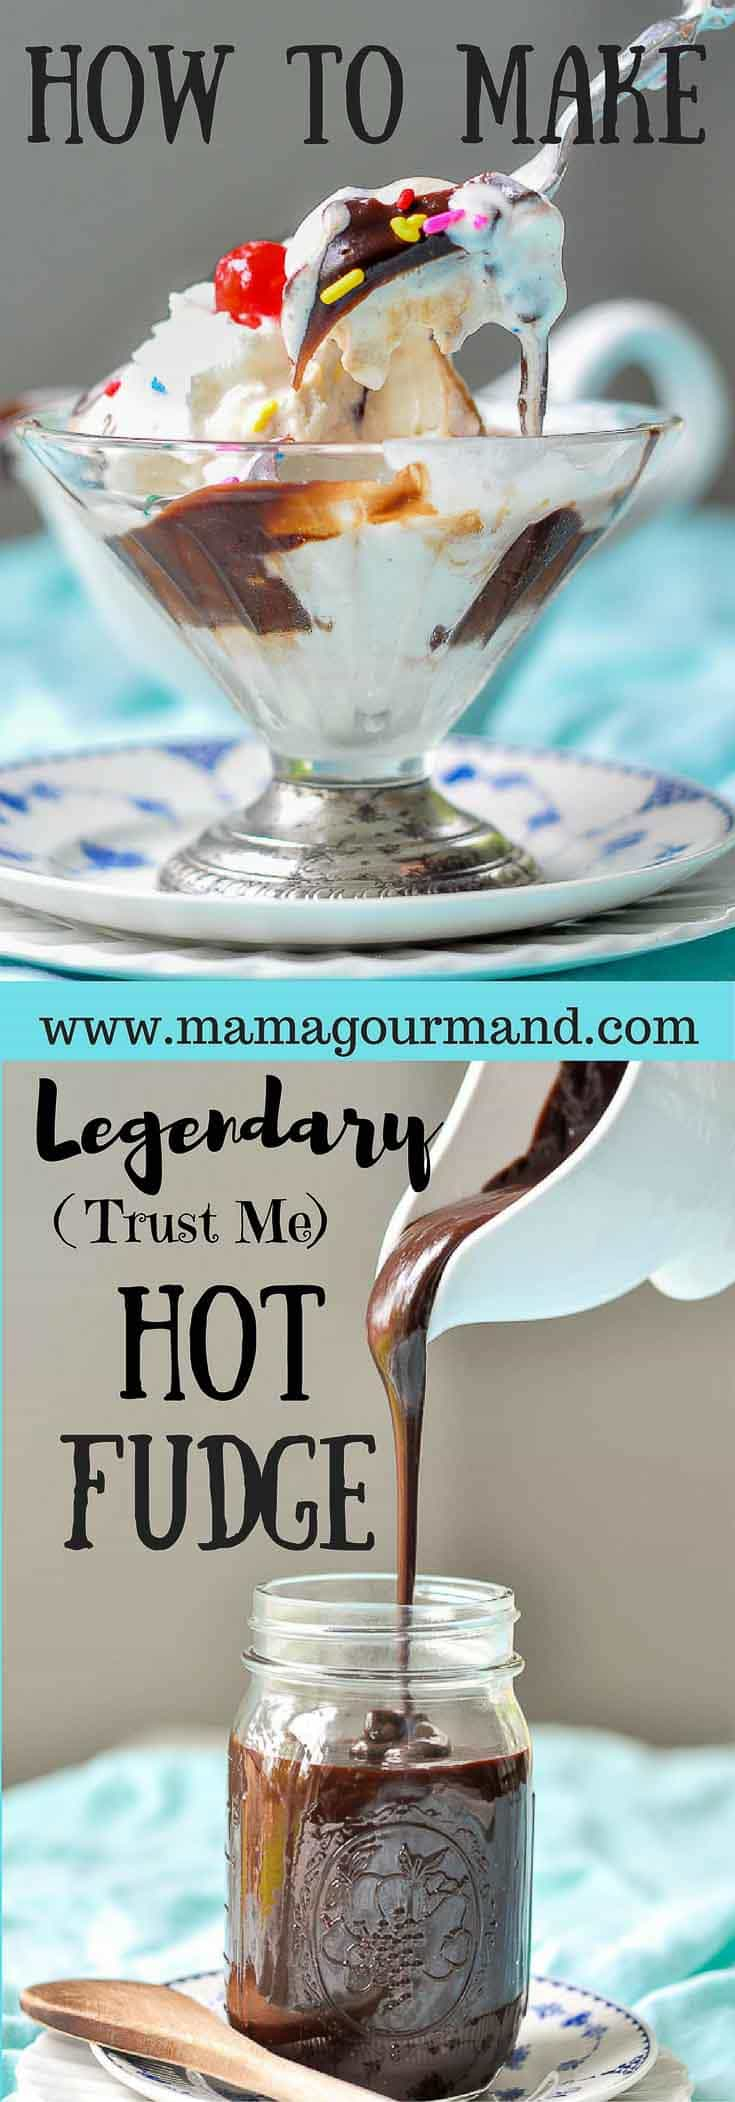 I've been making this legendary homemade hot fudge sauce for years. I've tried others, but this simple, chewy, gooey hot fudge recipe can't be beat! #hotfudge #homemadehotfudge #chocolatesauce #chewyhotfudge #glutenfreedessert https://www.mamagourmand.com